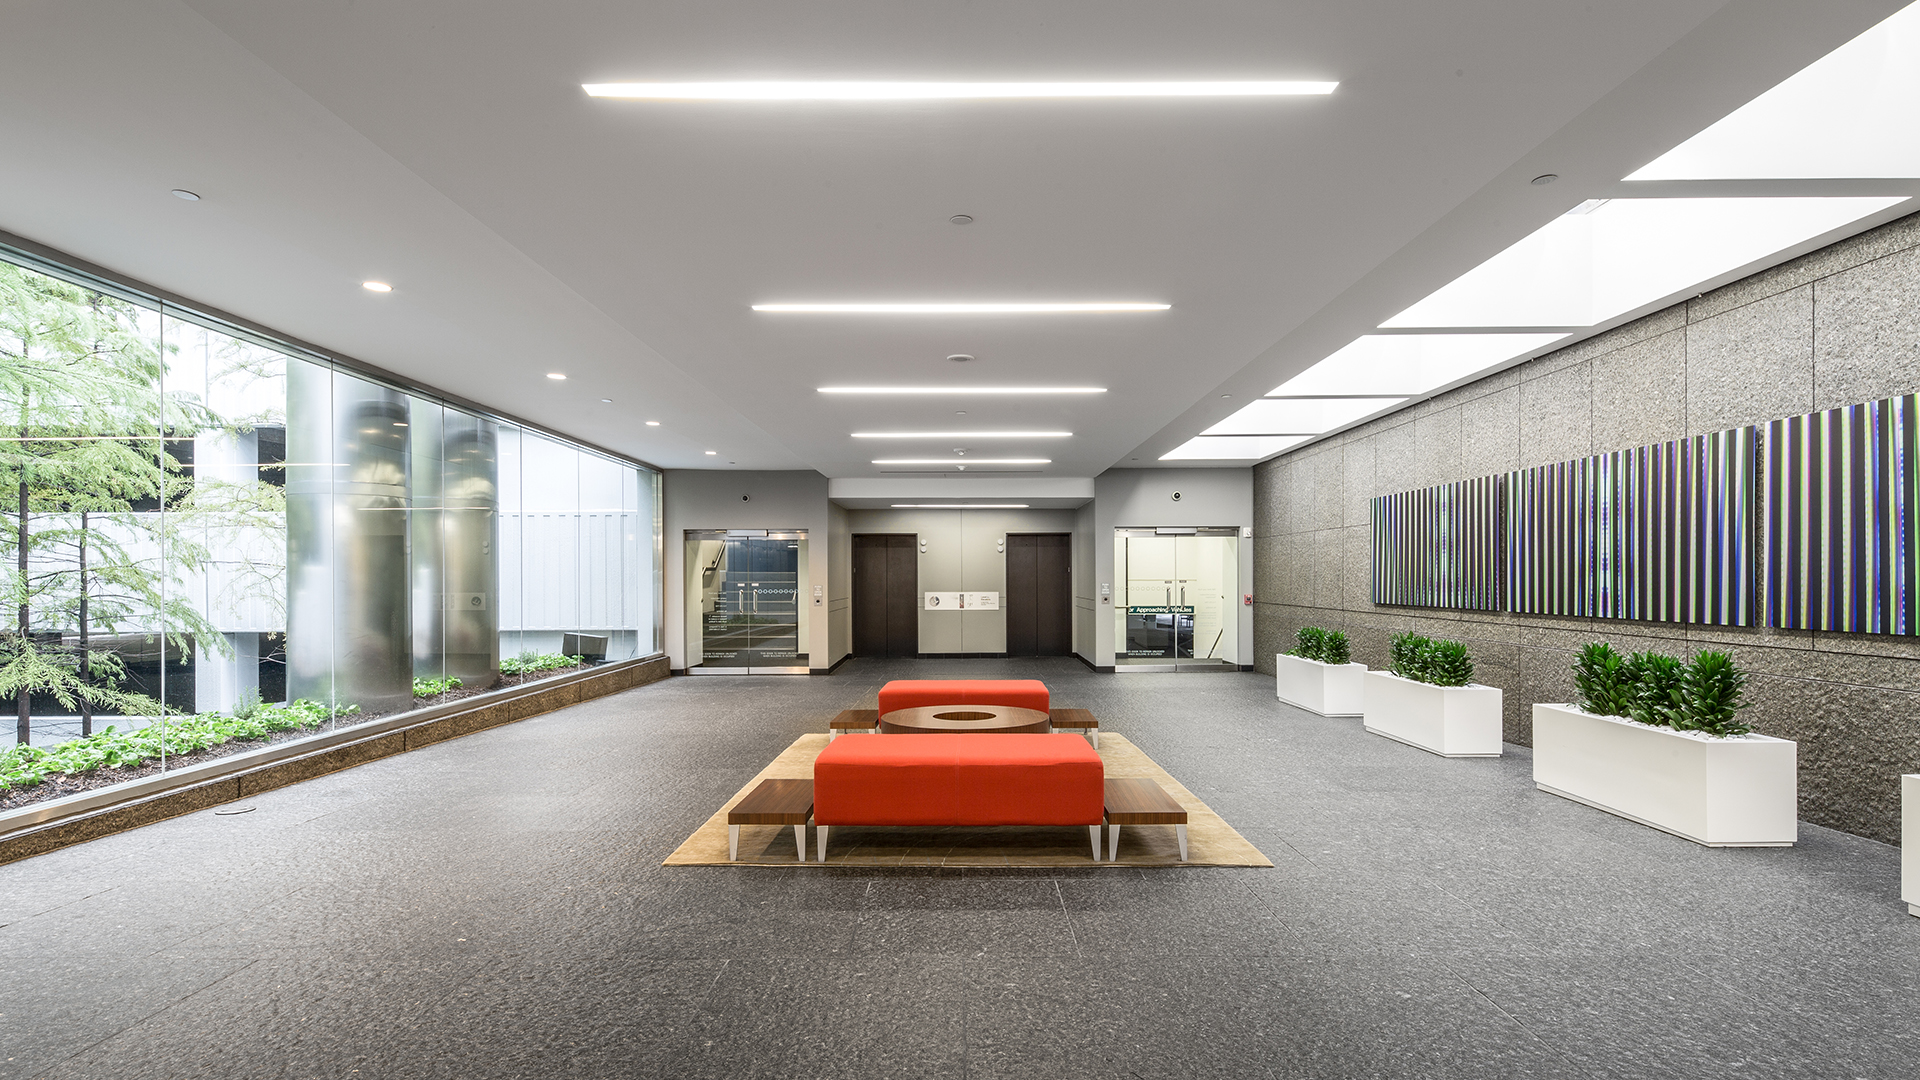 Architecture Building Repositioning Corporate Interior Design 1900 West Loop South Houston Natural Light Seating Area